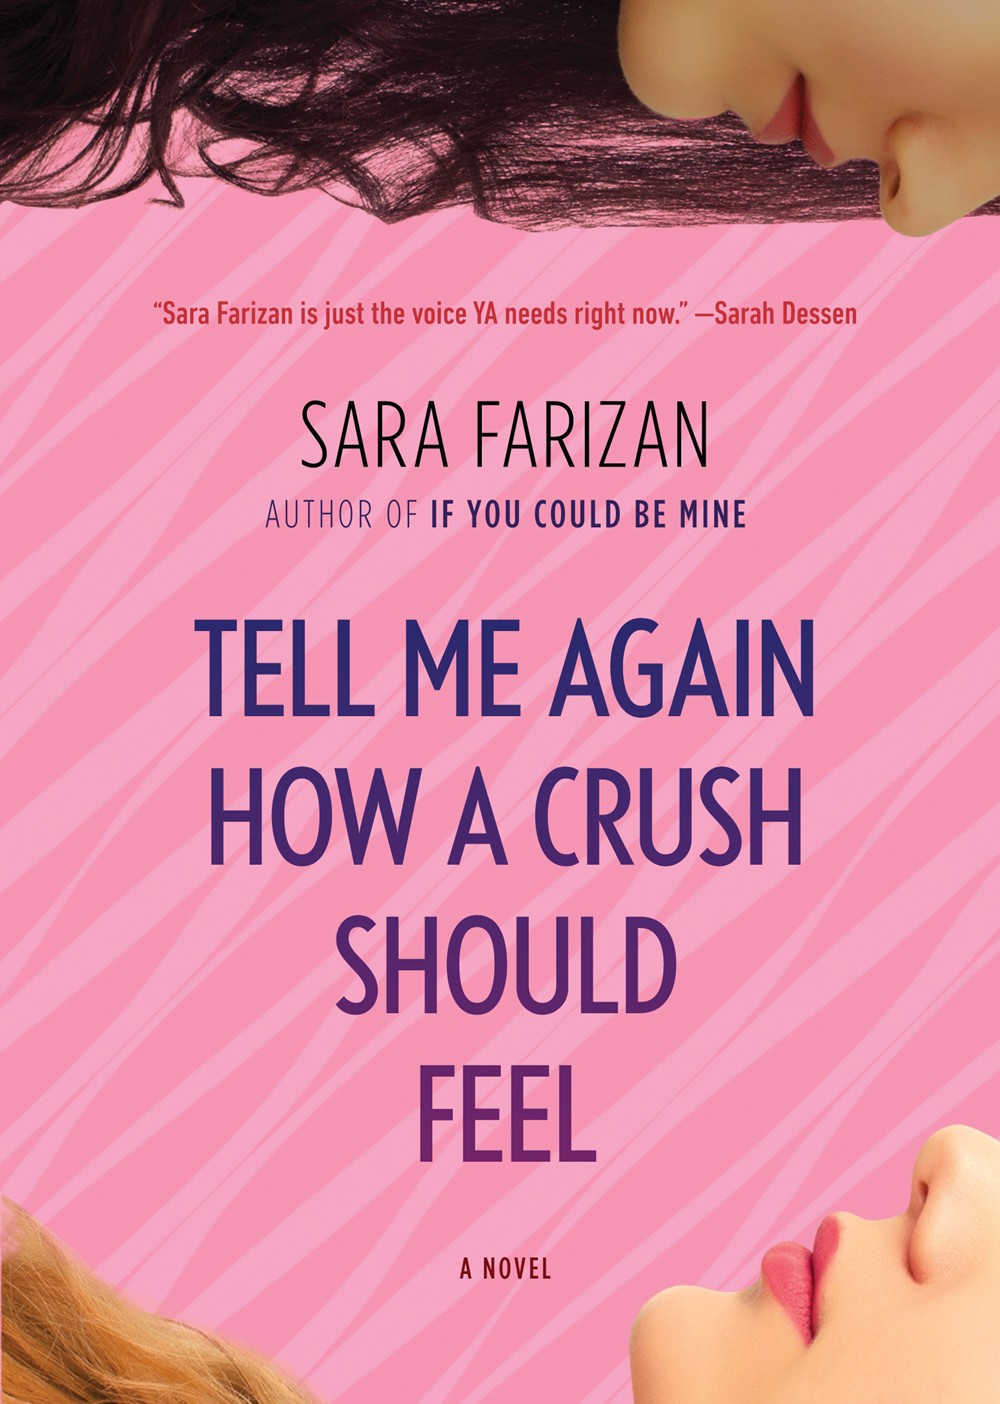 Tell Me Again How a Crush Should Feel, by Sara Farizan